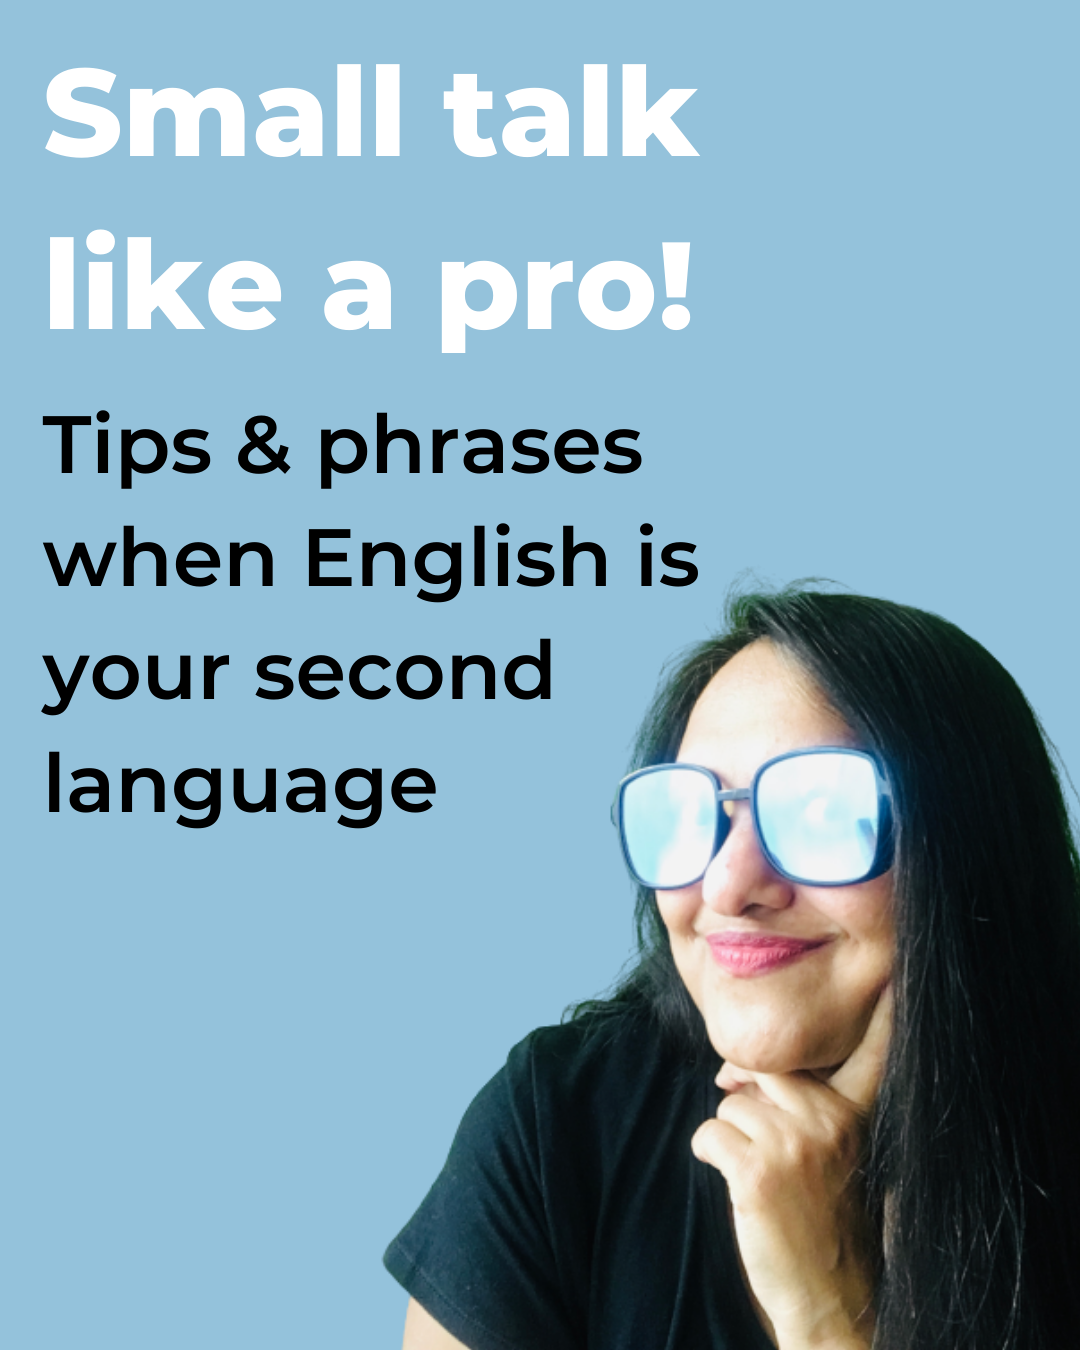 Small Talk at Work like a Pro: Tips & phrases when English is your Second Language